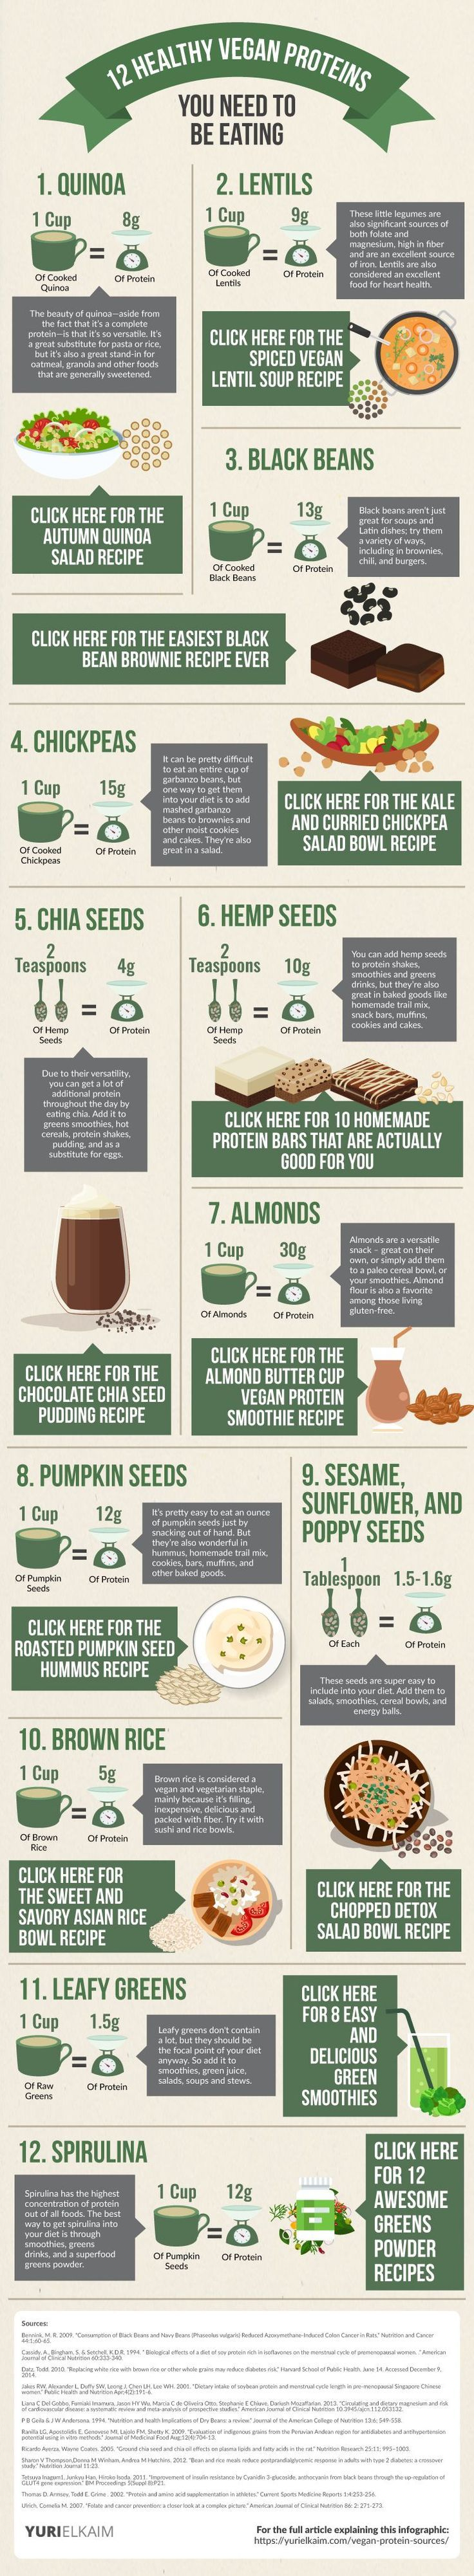 Even if you're not vegan, these 12 non-meat protein sources are the best of the best - and should be in your diet. Check them out... along with the recipes.